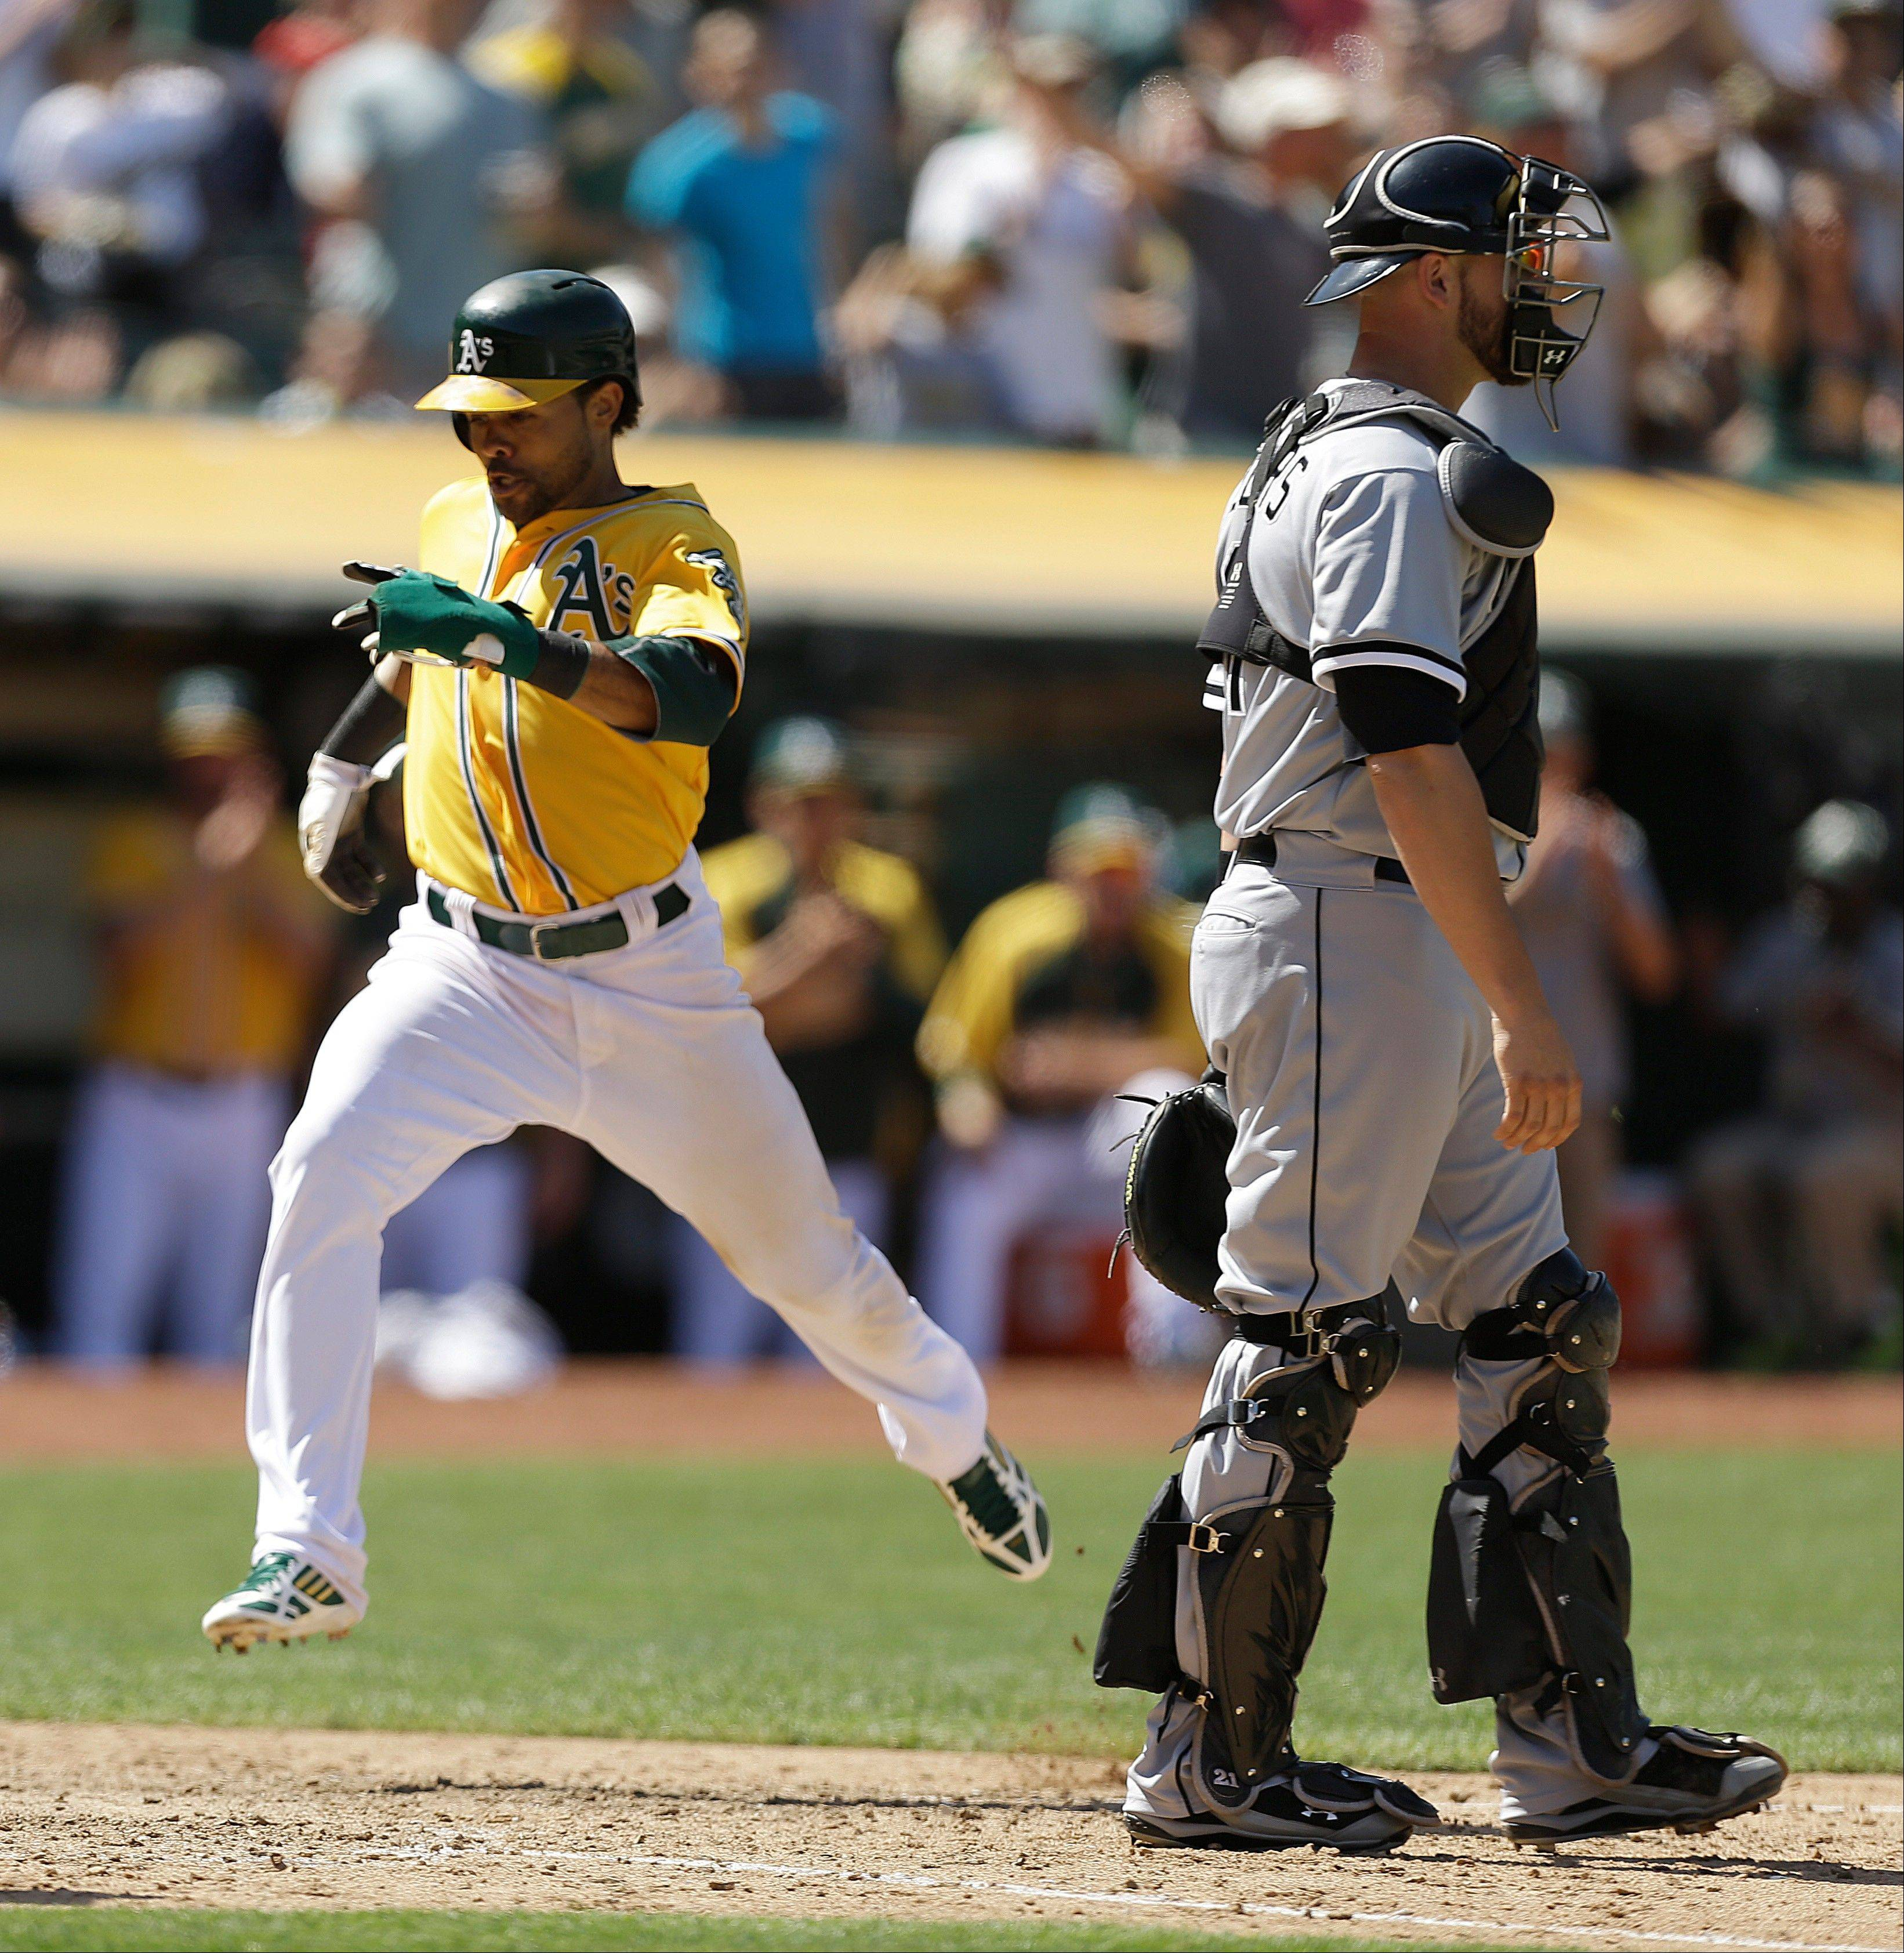 Oakland Athletics' Coco Crisp, left, scores past Chicago White Sox catcher Tyler Flowers in the eighth inning of a baseball game, Sunday, June 2, 2013, in Oakland, Calif. Crisp scored on a single by A's Jed Lowrie.